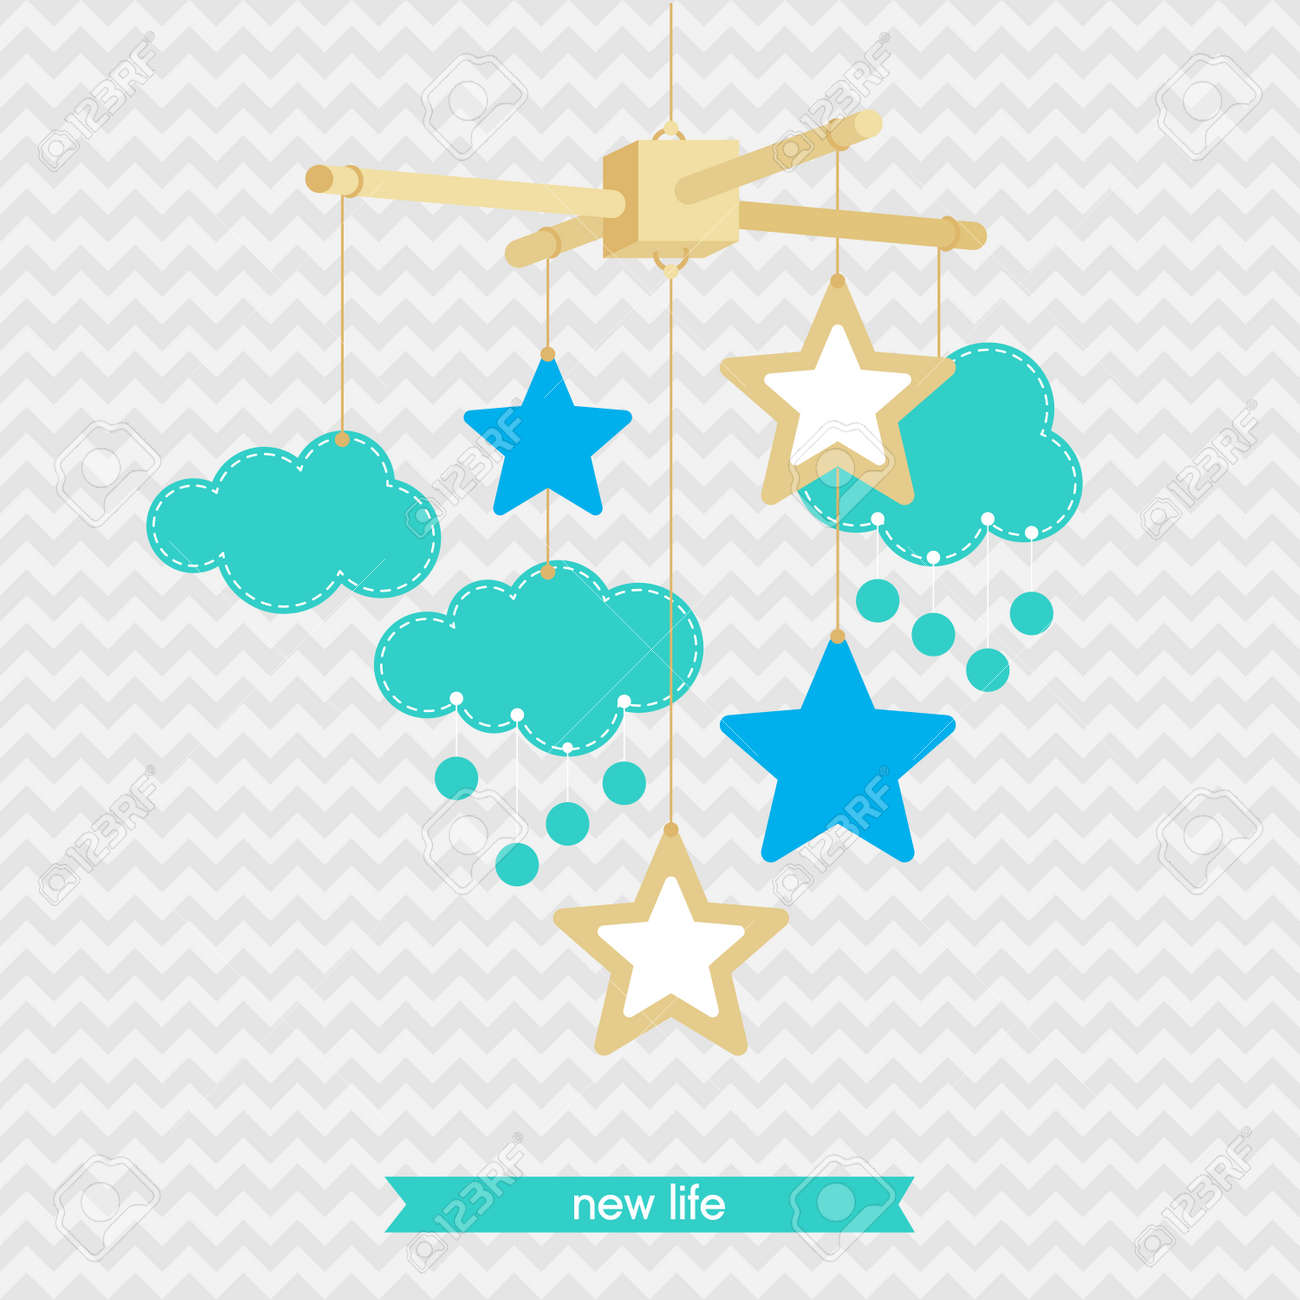 Baby shower invitation template illustration of baby mobile baby shower invitation template illustration of baby mobile stars and clouds isolated stopboris Image collections